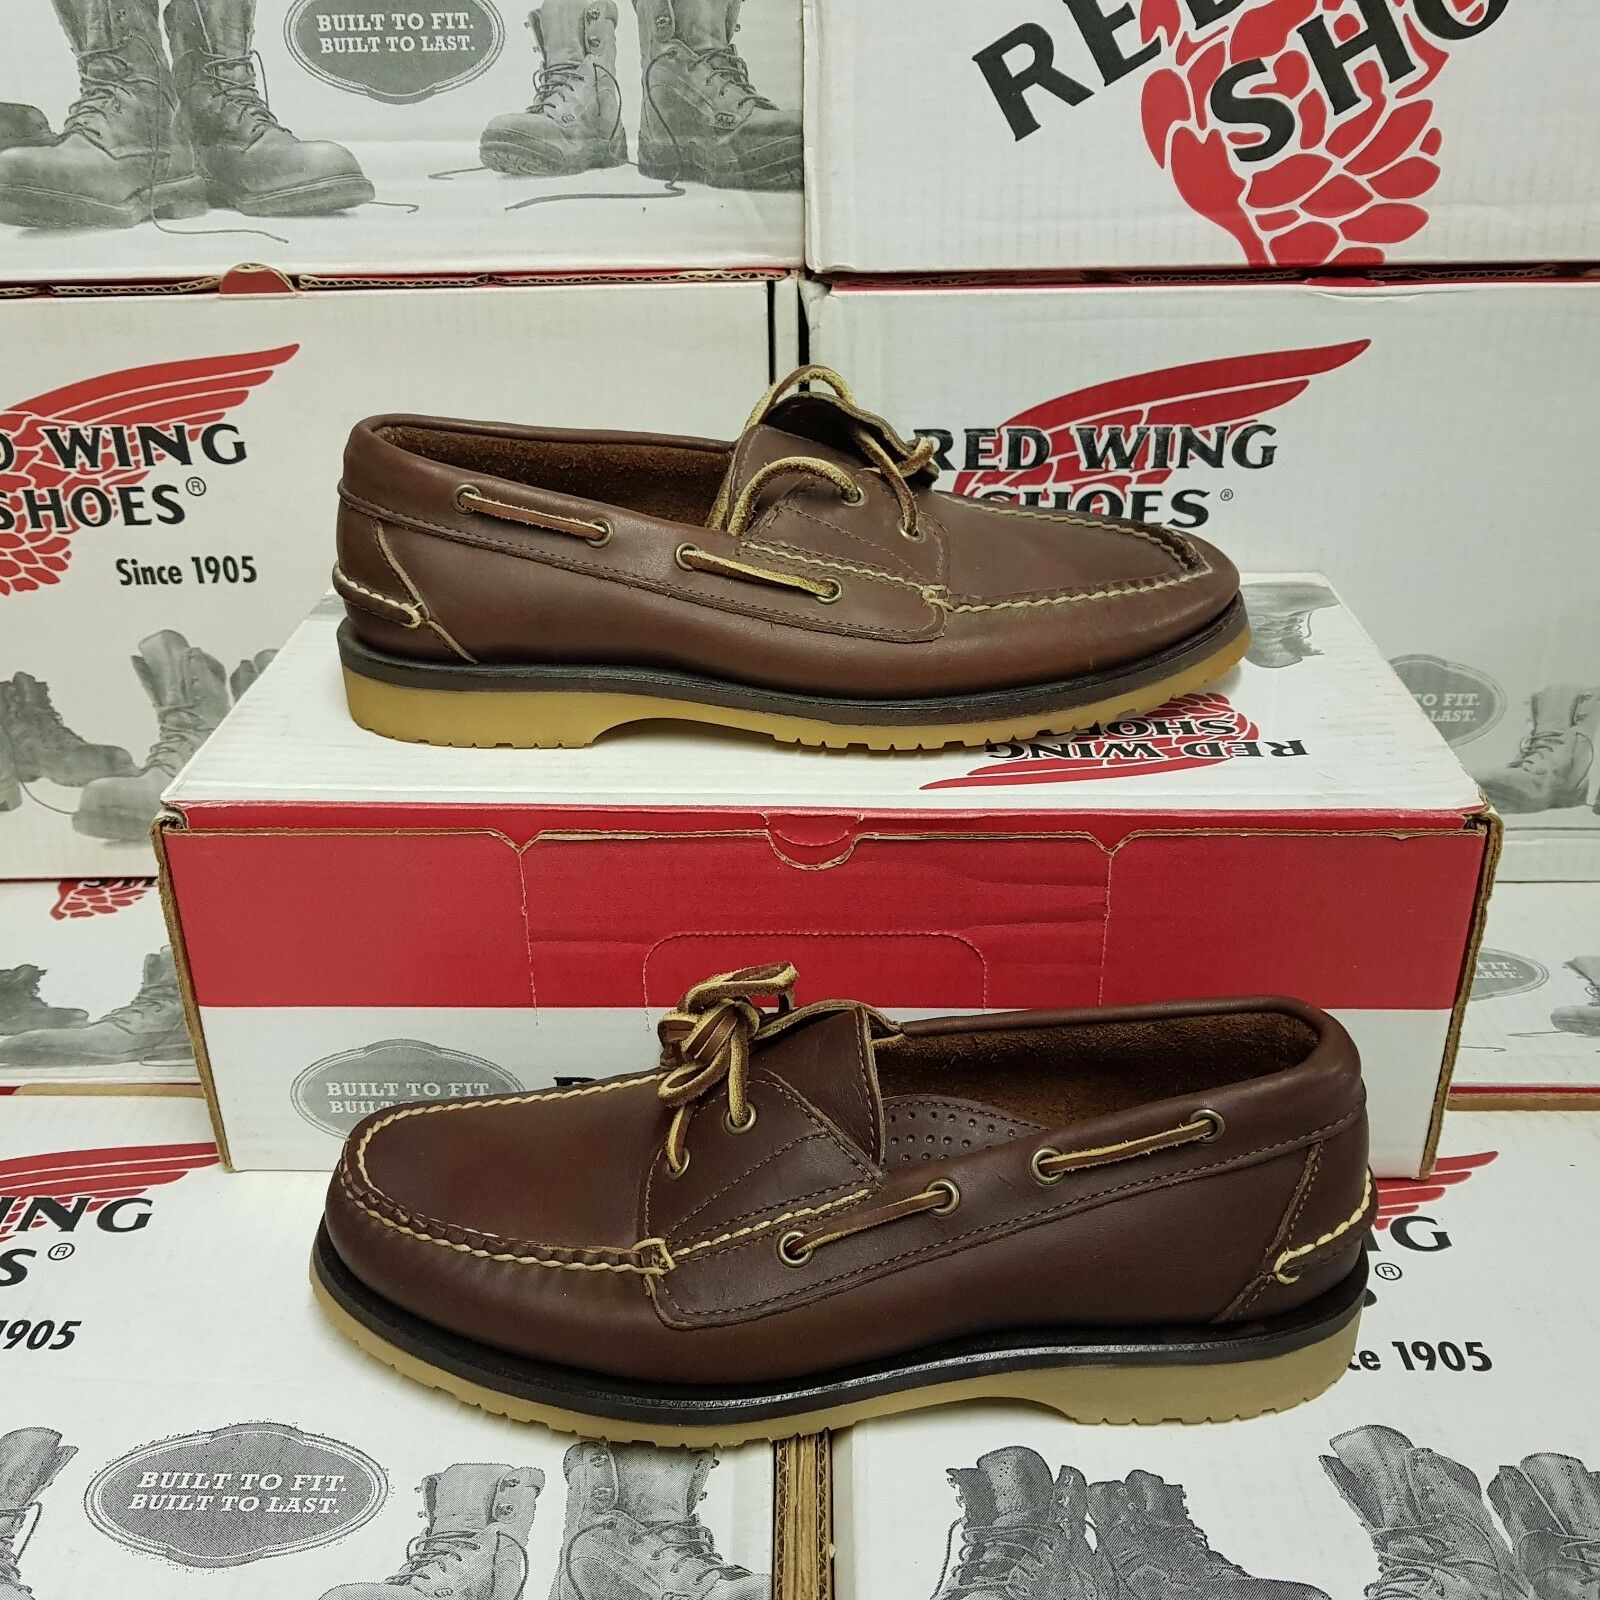 RED WING SHOES 9172 men's leather loafer boat US 7,5 (pv:)